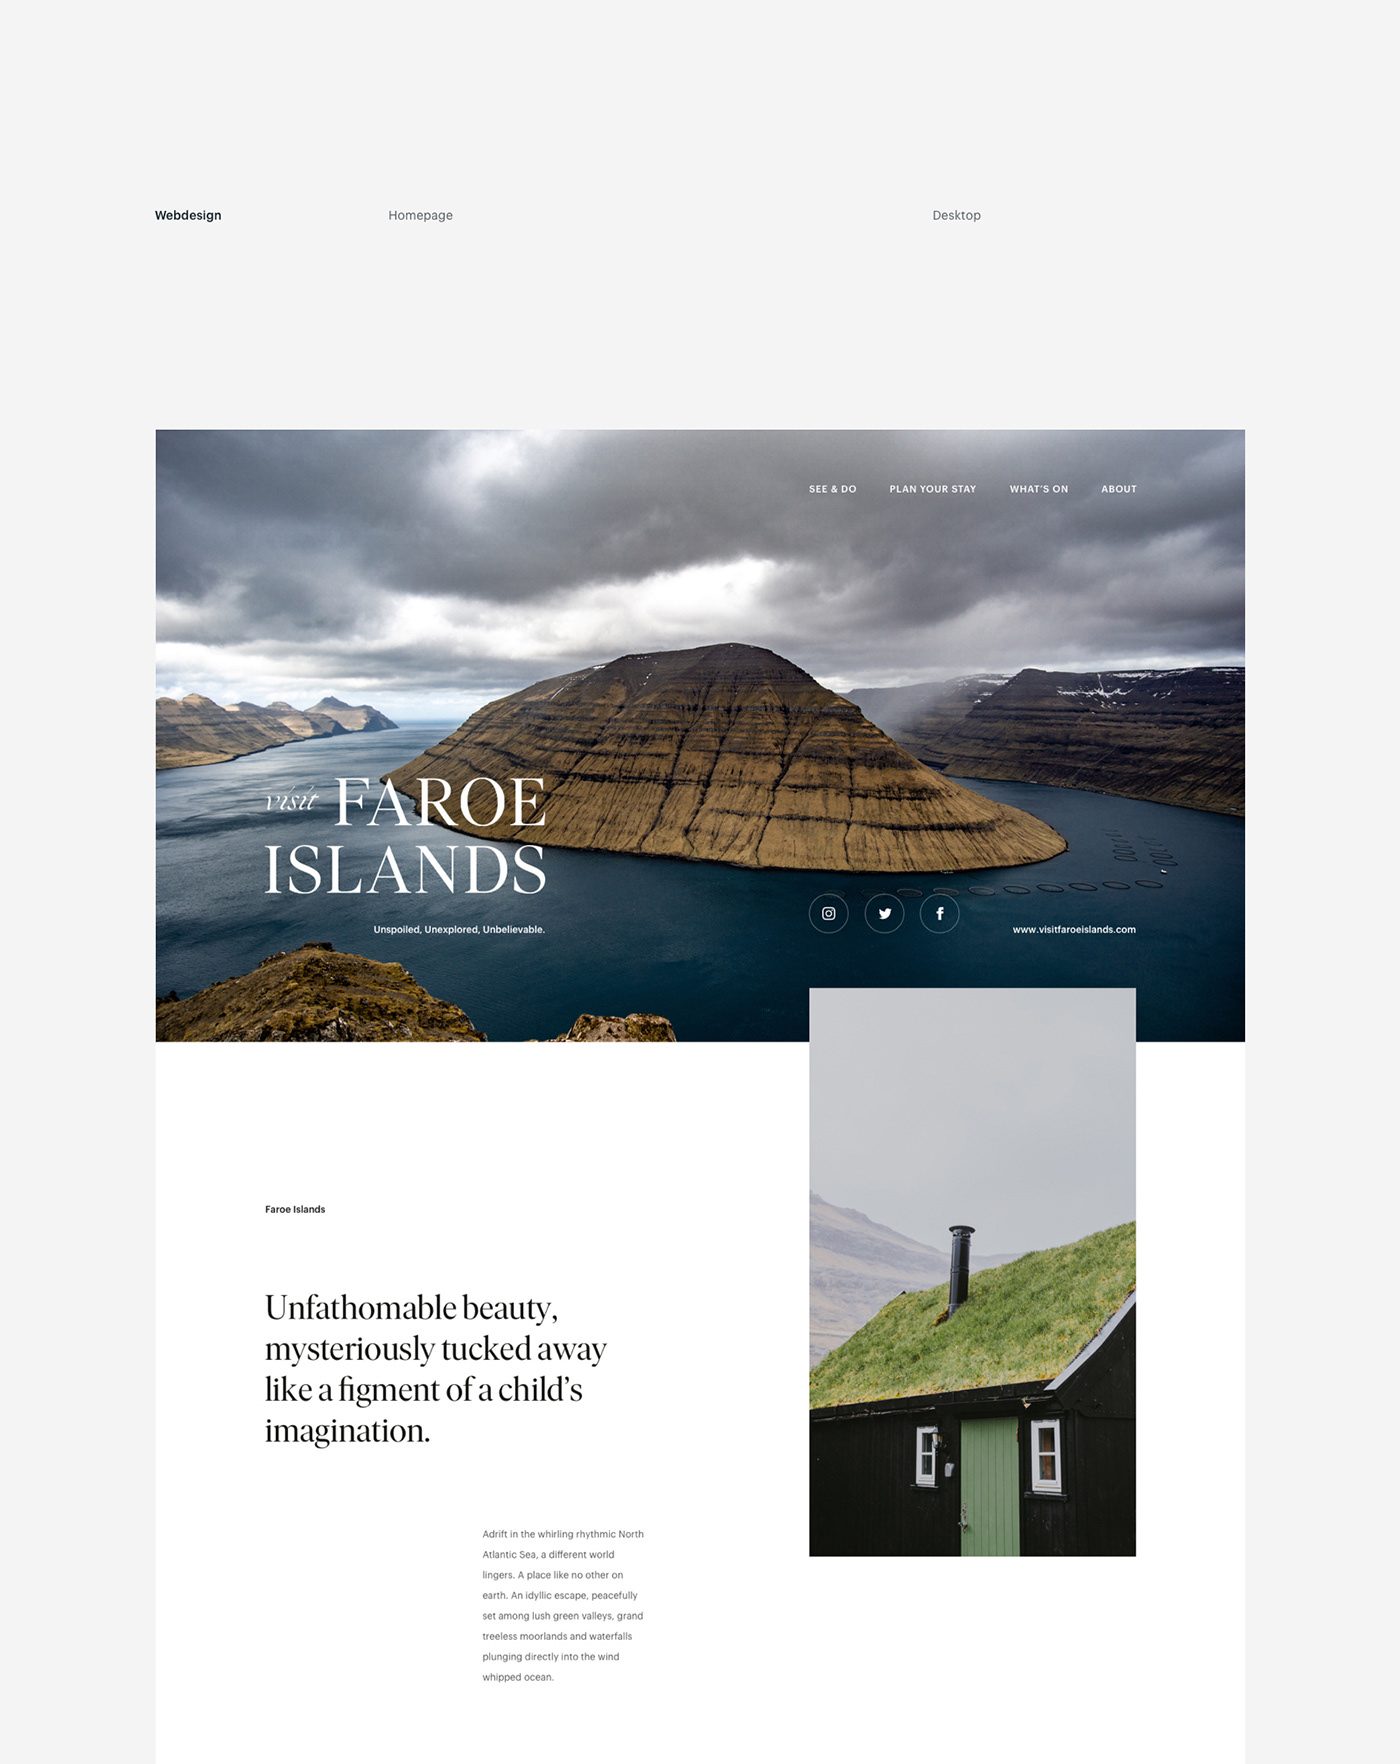 elegant website design for a travel agency in the faroe islands